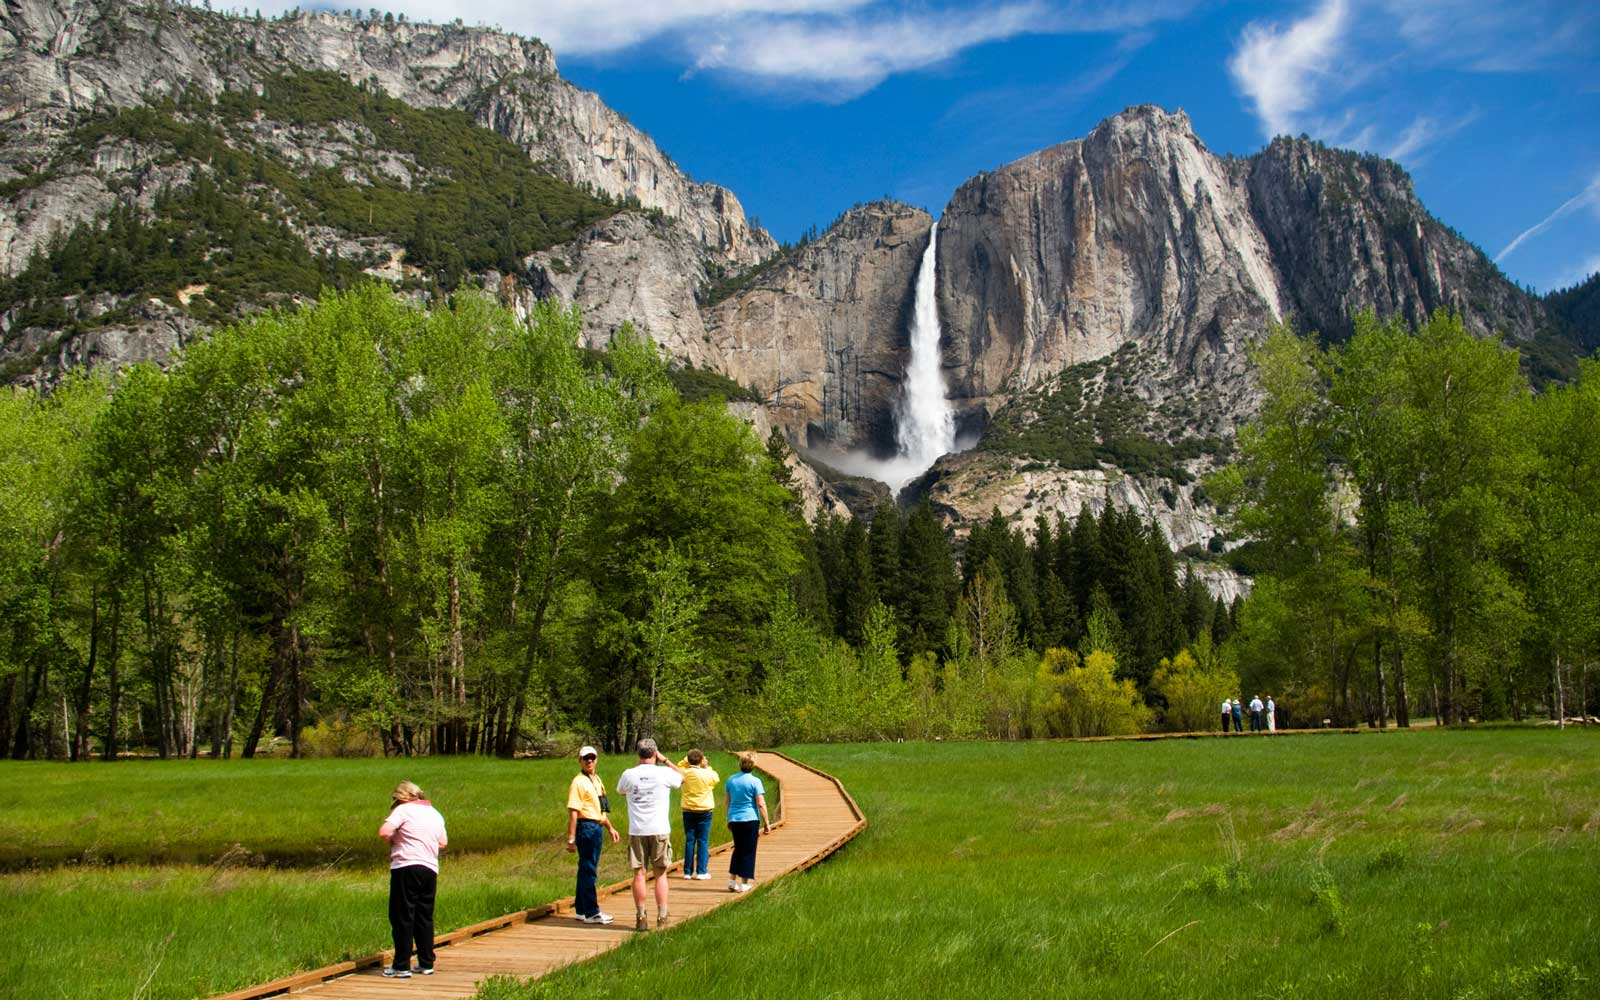 People looking at Yosemite Falls from  wooden walkway.